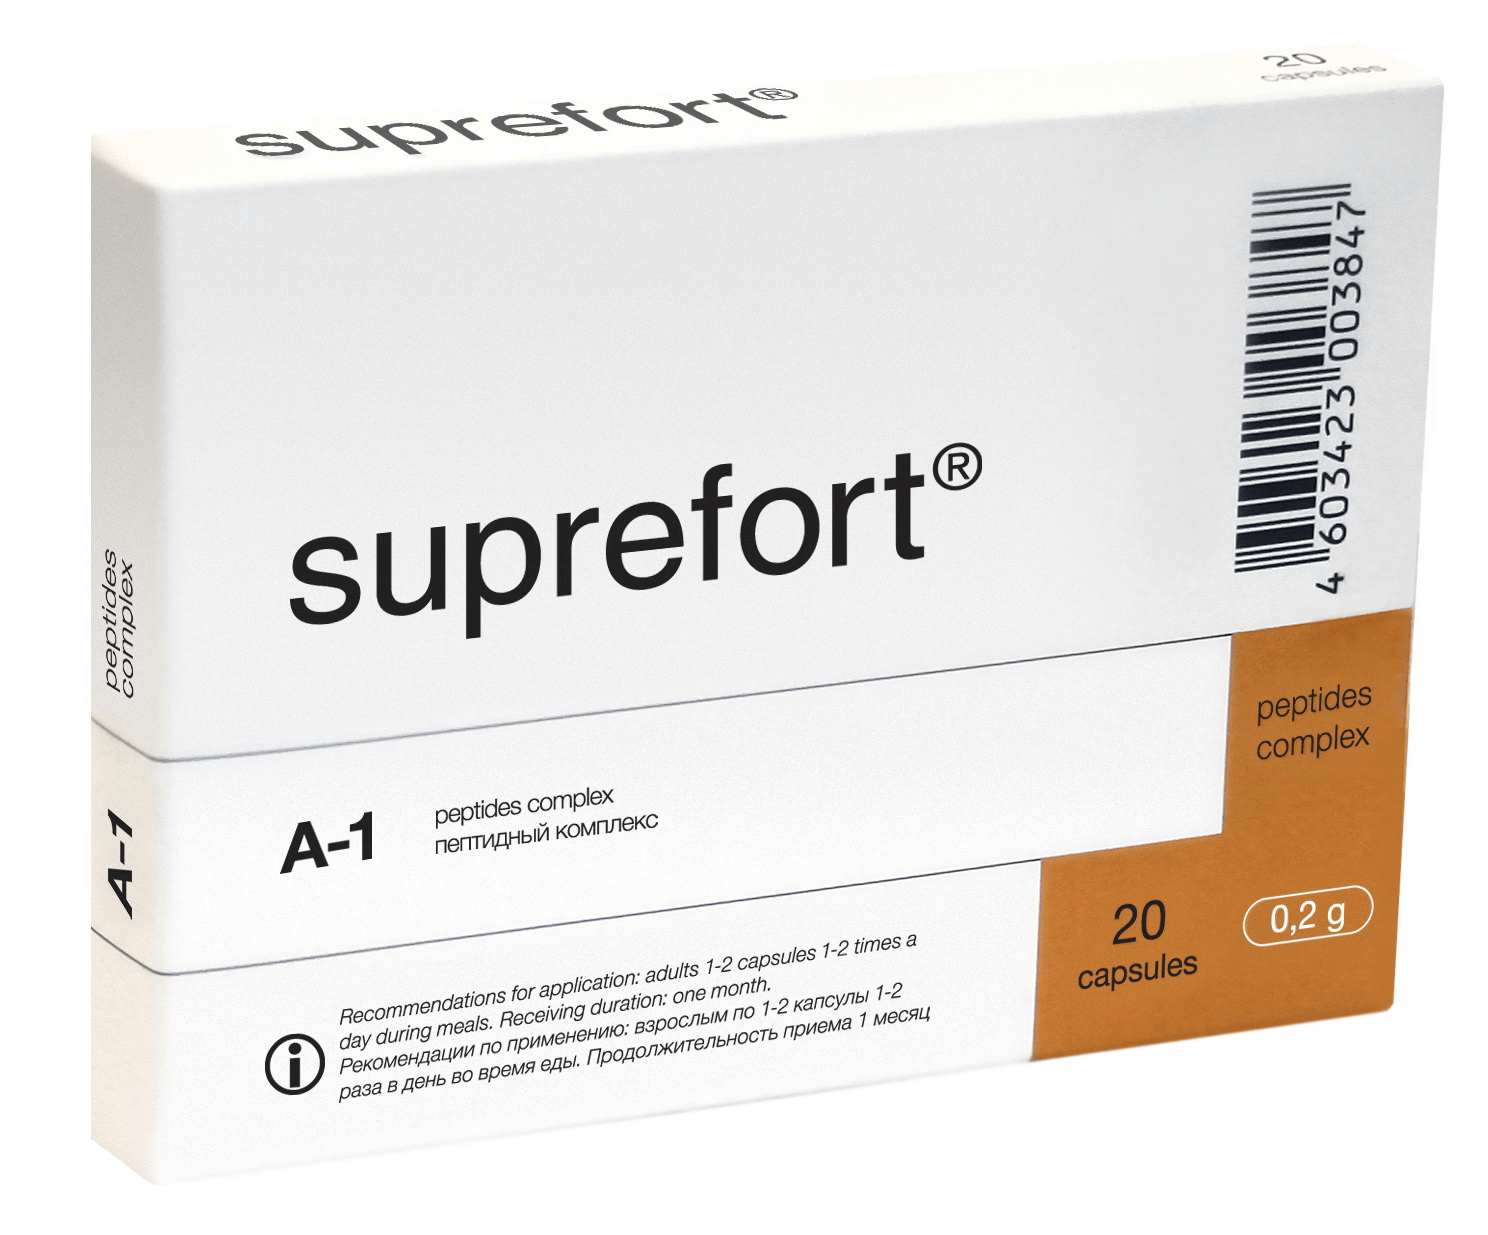 superfort-package-2